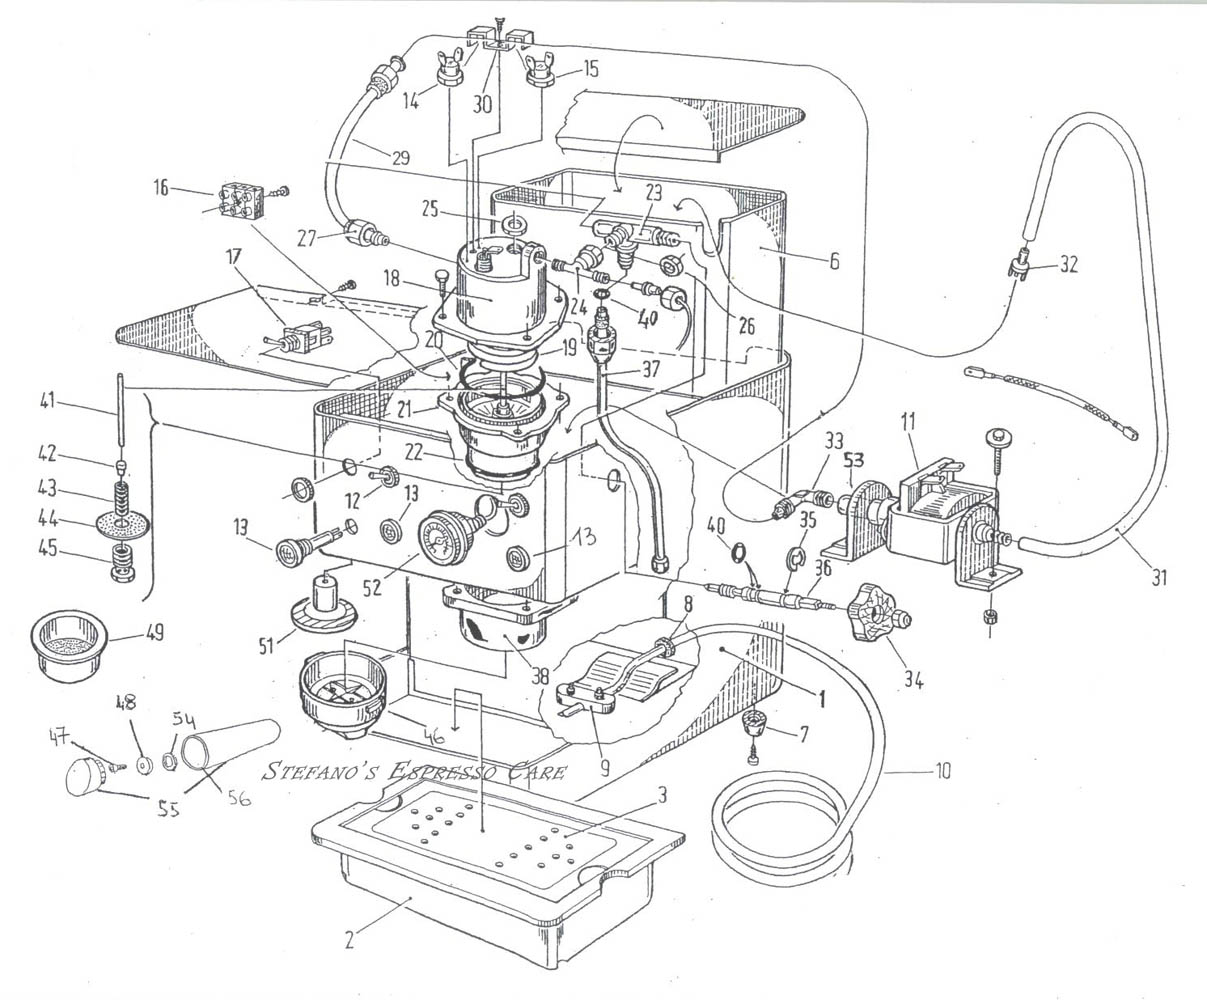 Isomac Giada Espressocare La Marzocco Wiring Diagram Scroll Down To See Parts Specific The They May Also Fit Other Machines Schematic Shows Details Before Changes Were Made At